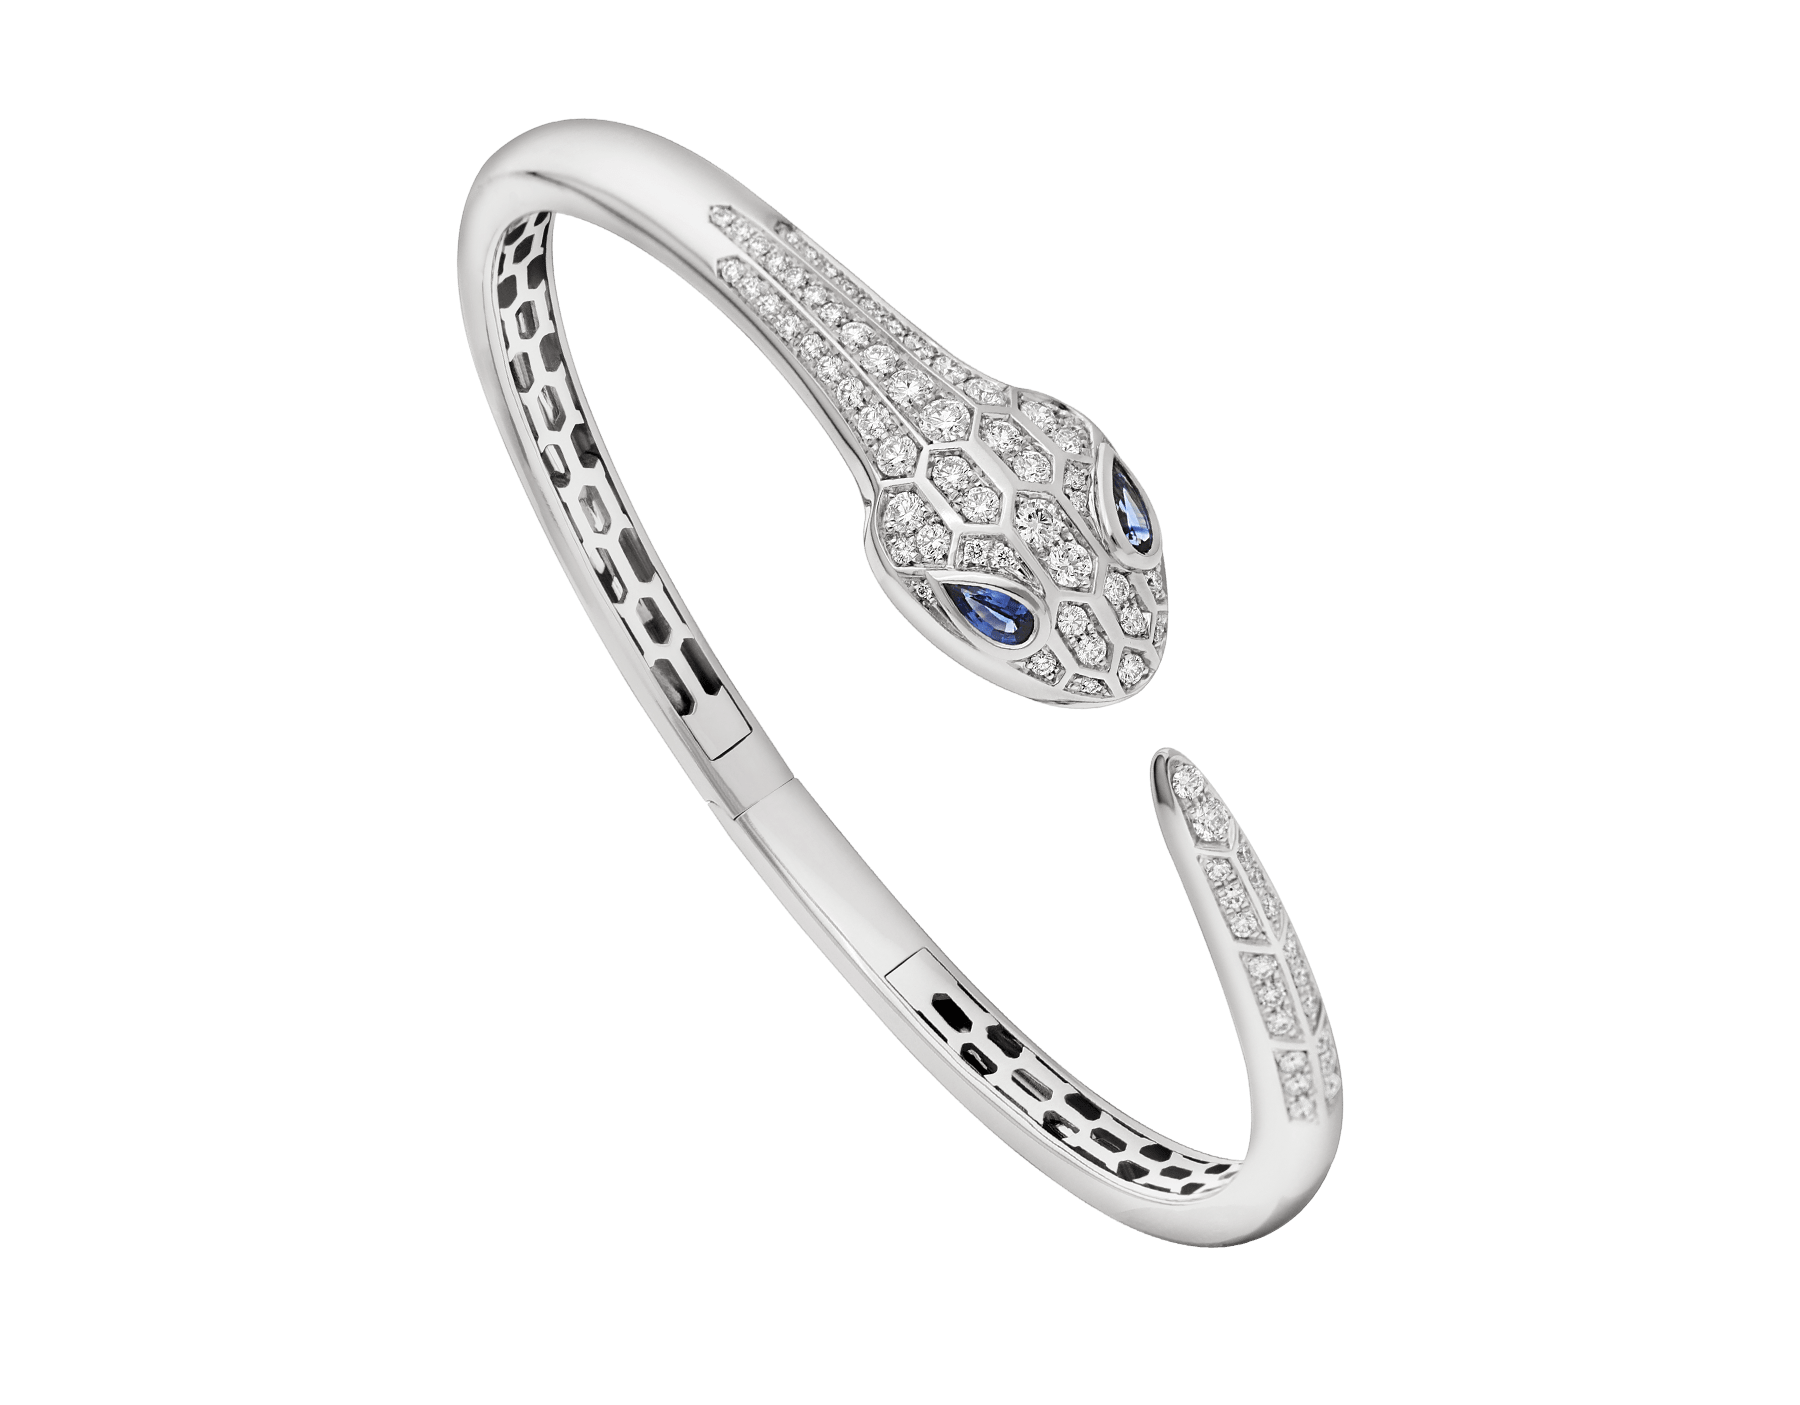 Serpenti bangle bracelet in 18 kt white gold, set with blue sapphire eyes and pavé diamonds. BR858110 image 1